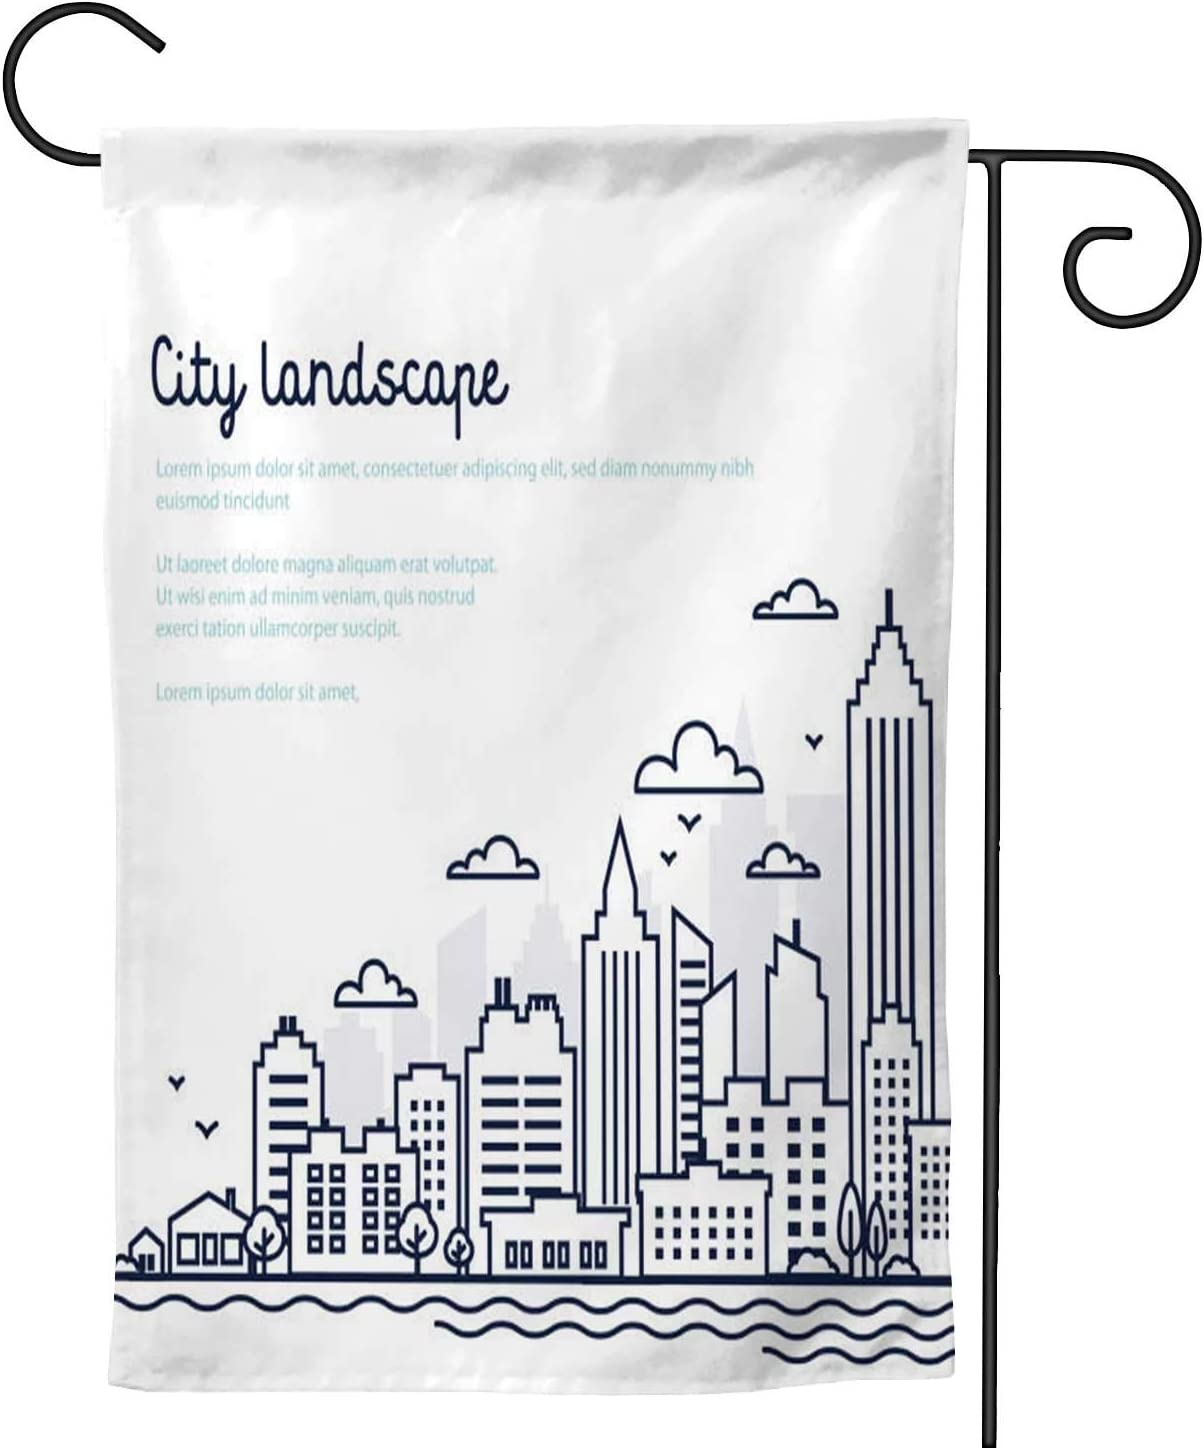 Cit landscape template.Thin line landscape.Downtown with high skscrapers.Panorama architecture Government buildings Isolated outline -.Urban life - Midtown,Decorative Outdoor Flag Sign,House ard Ga